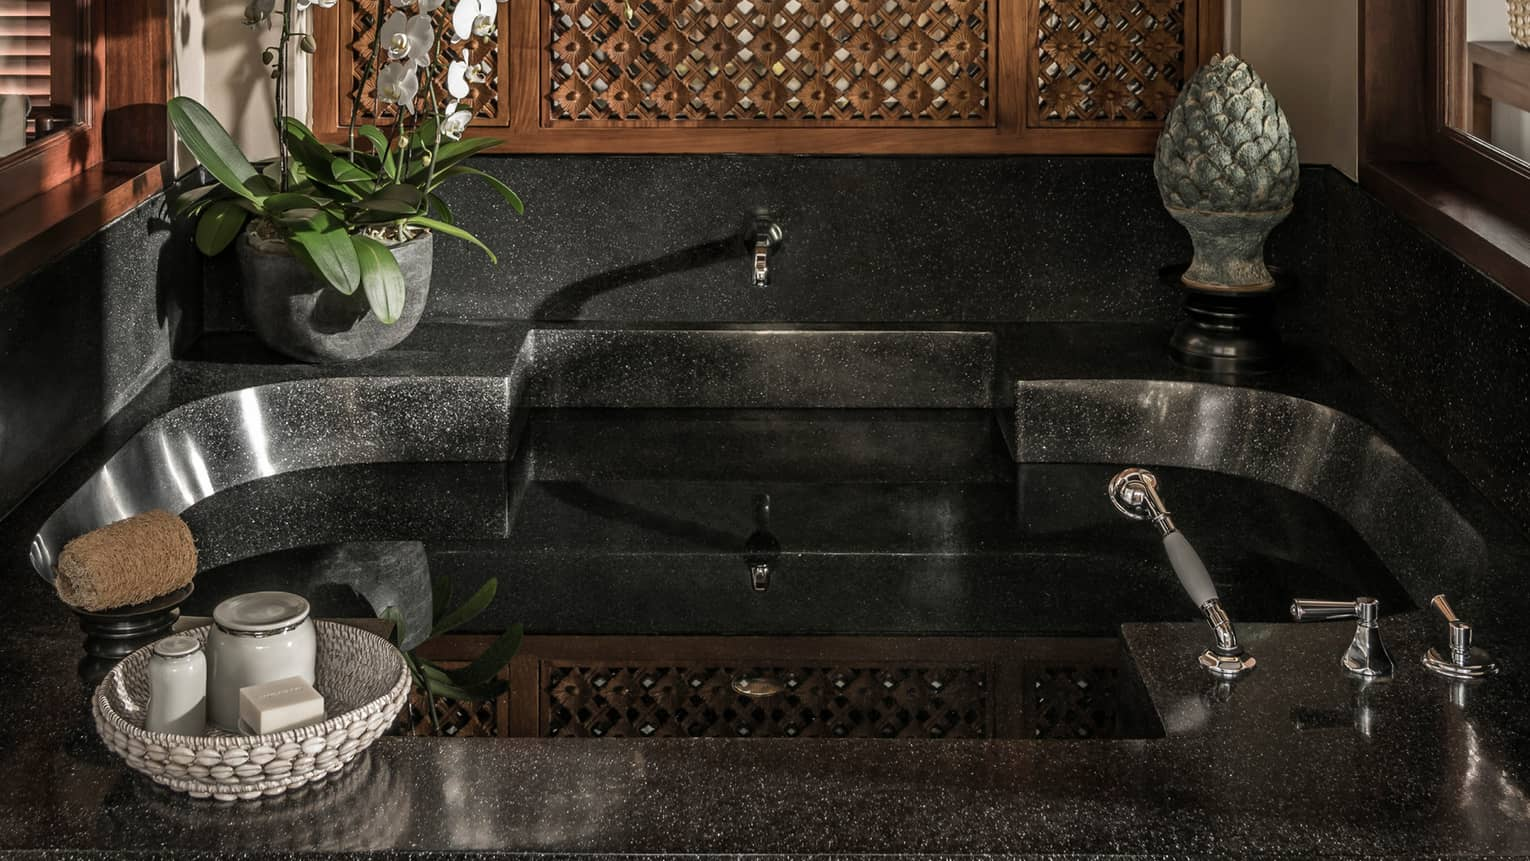 Black stone bathroom tub with potted plant and sculpture on ledge, basket with soaps and jars